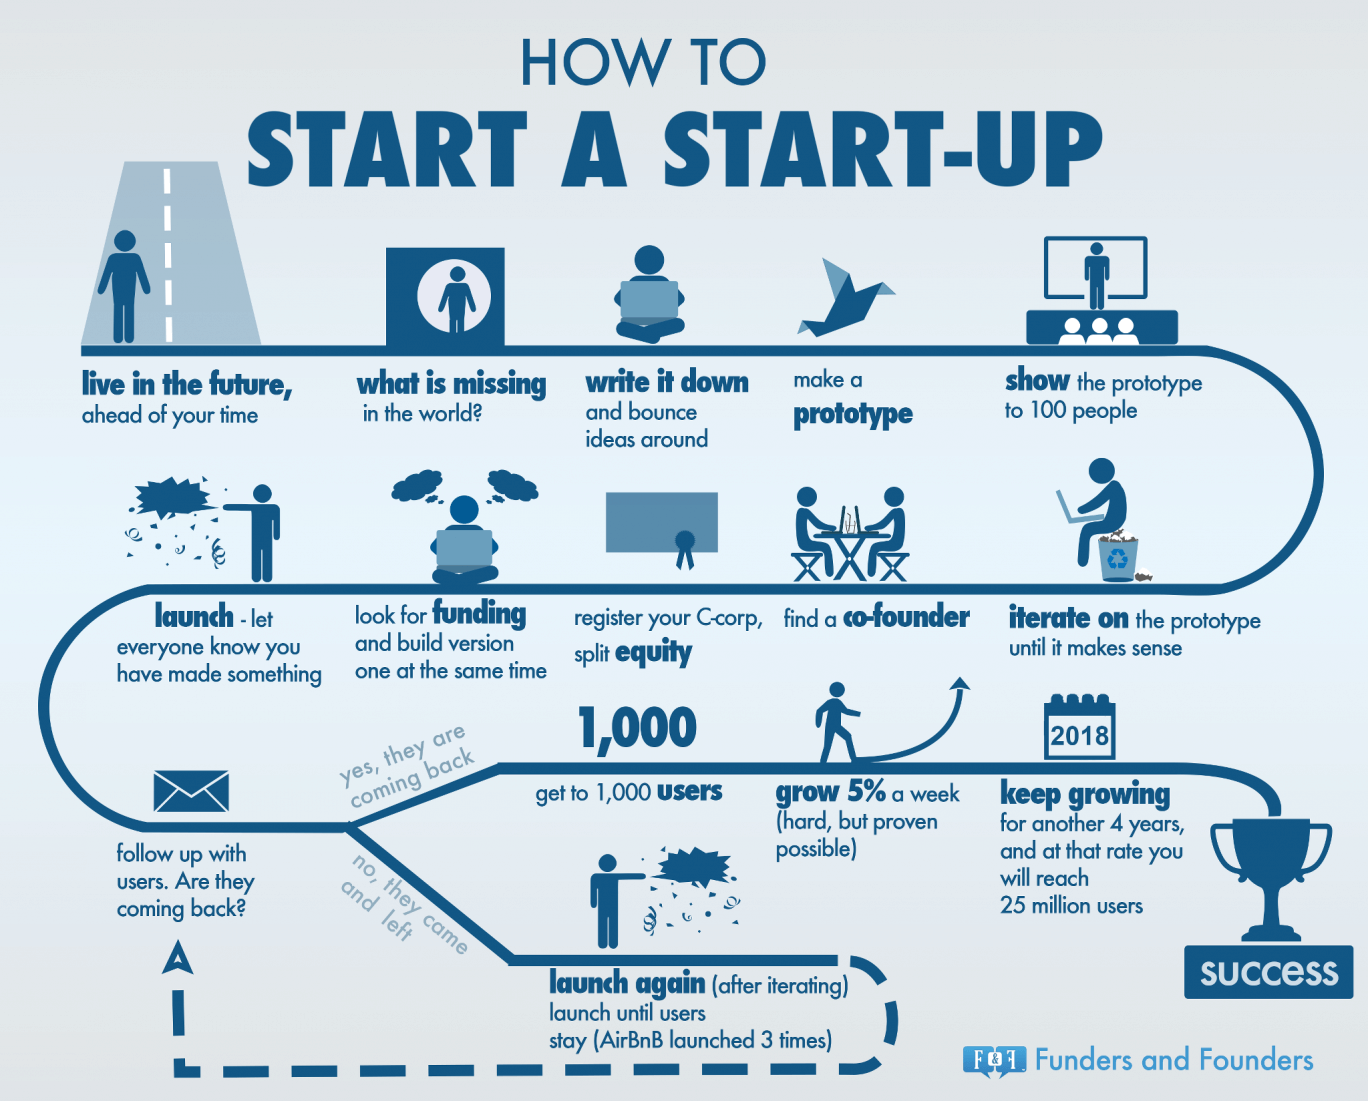 how-start-a-startup-infographic-business-start-up-932354045